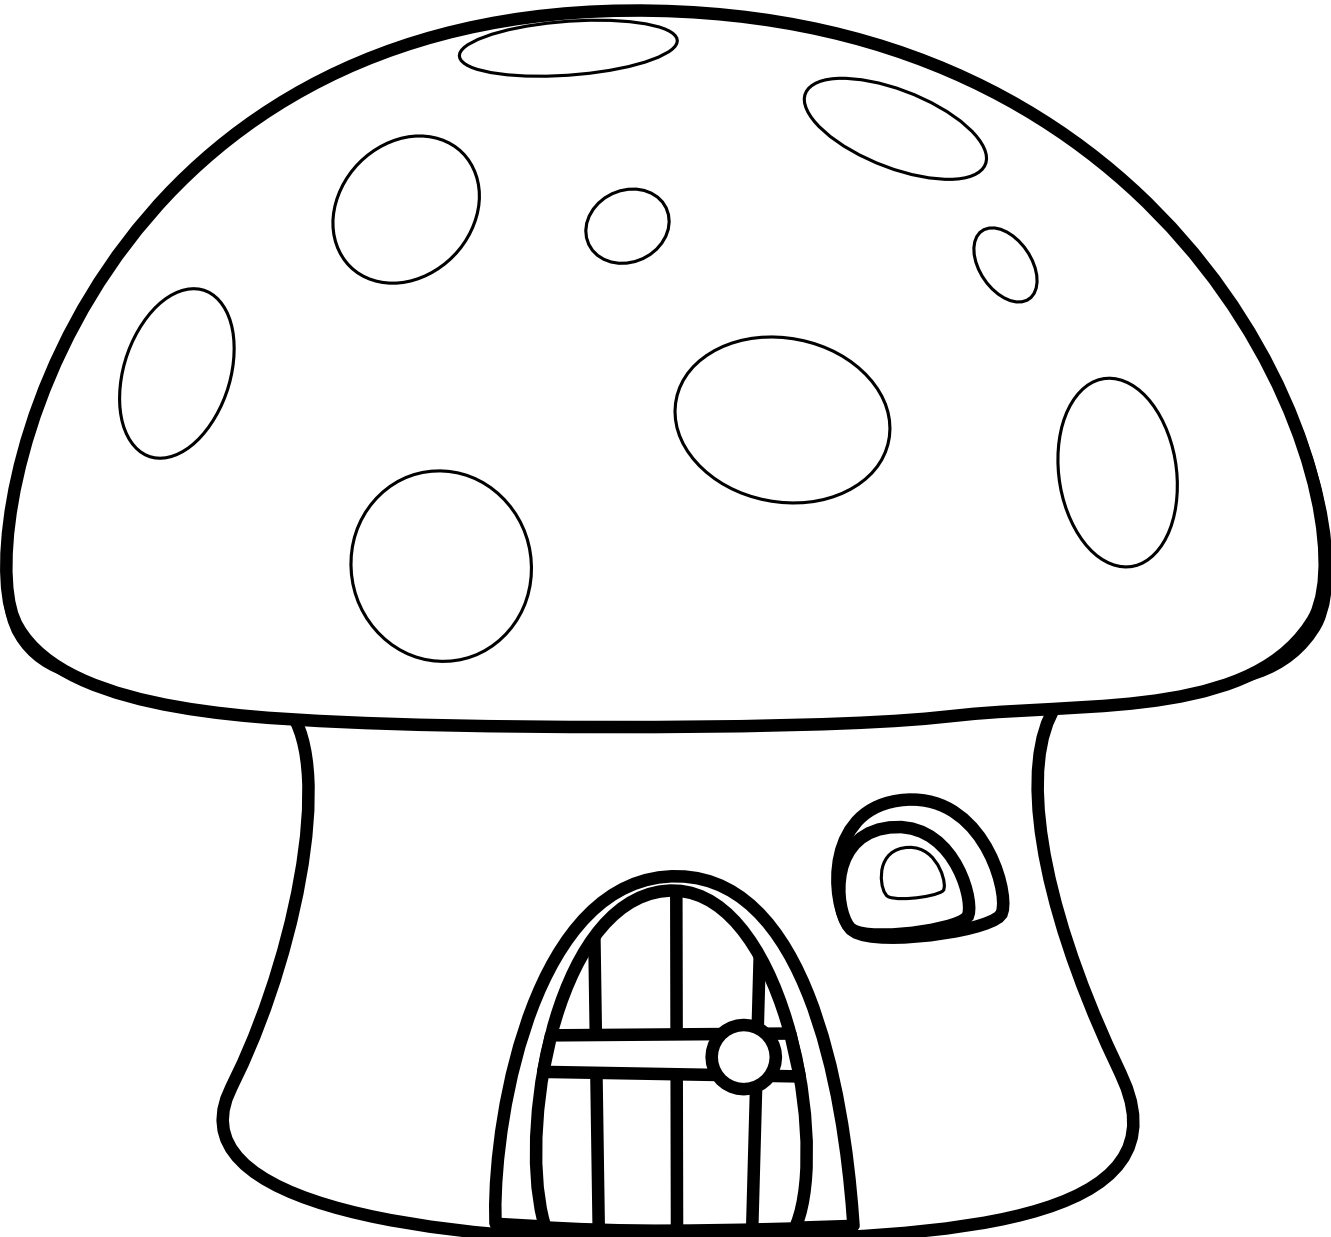 Drawing mushrooms house. Collection of mushroom